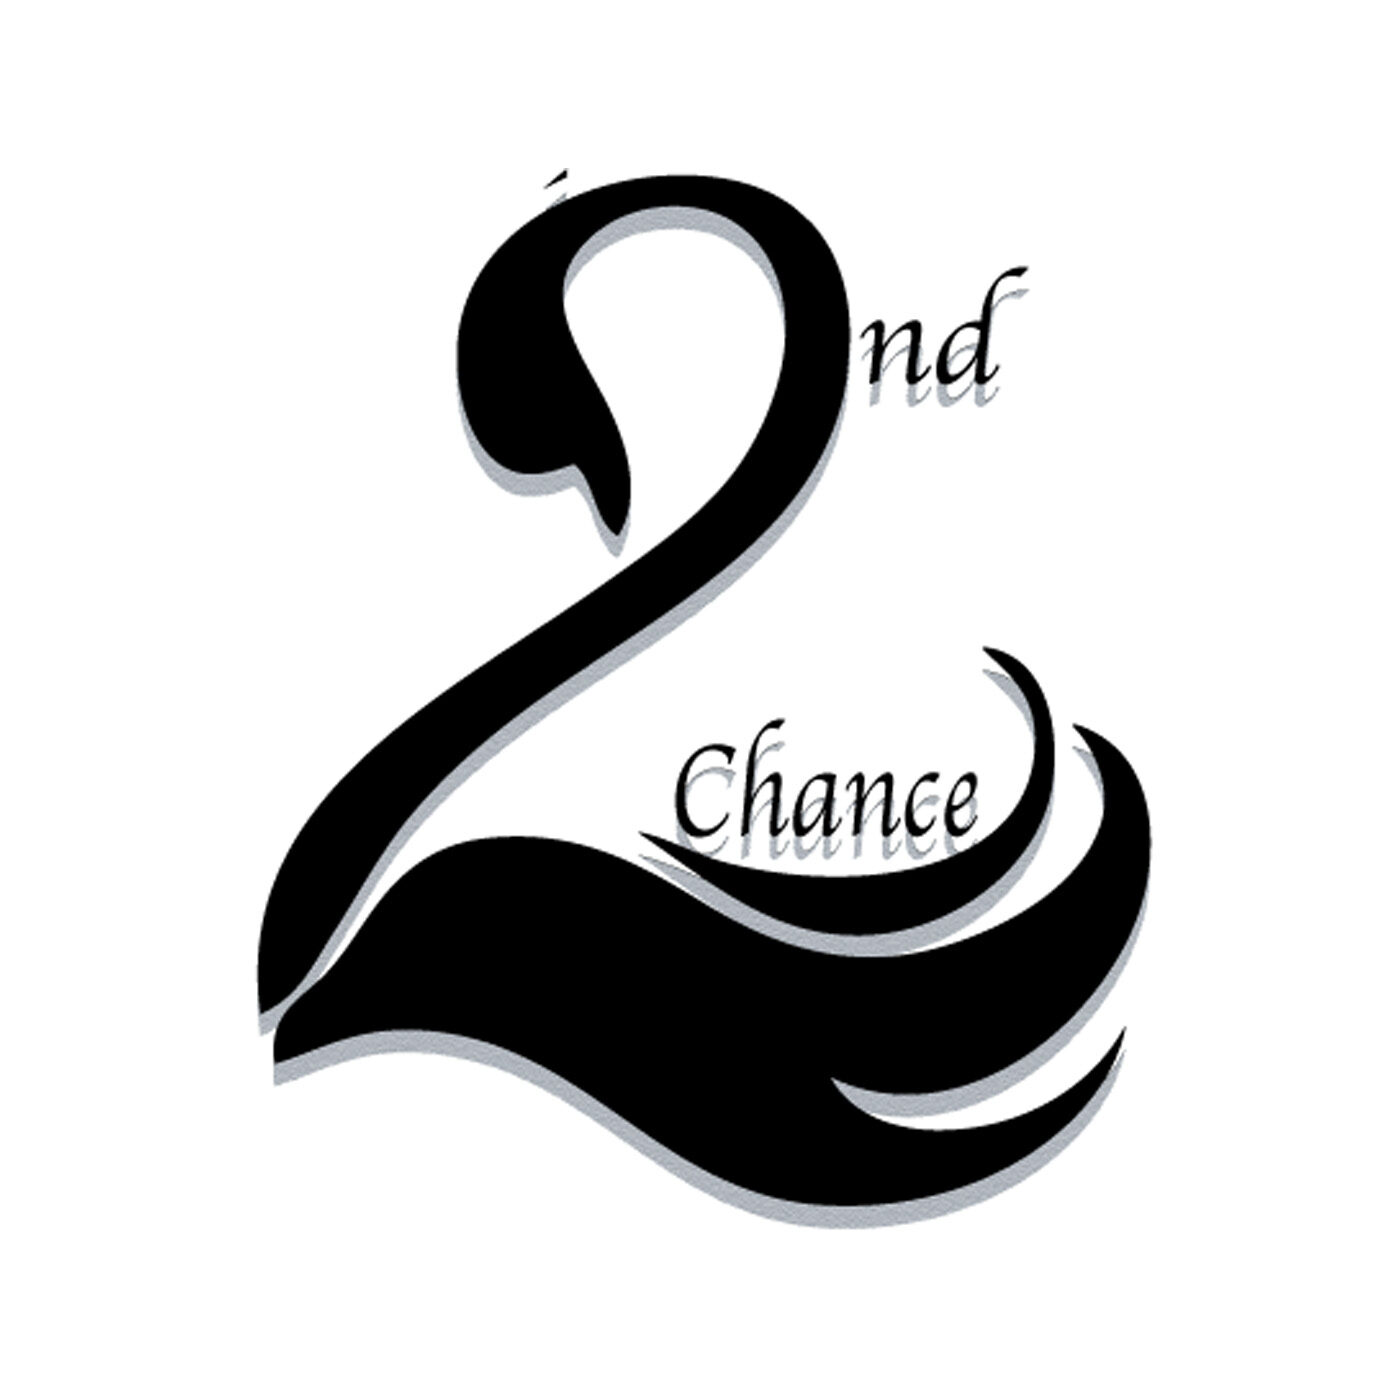 2nd Chance Consulting